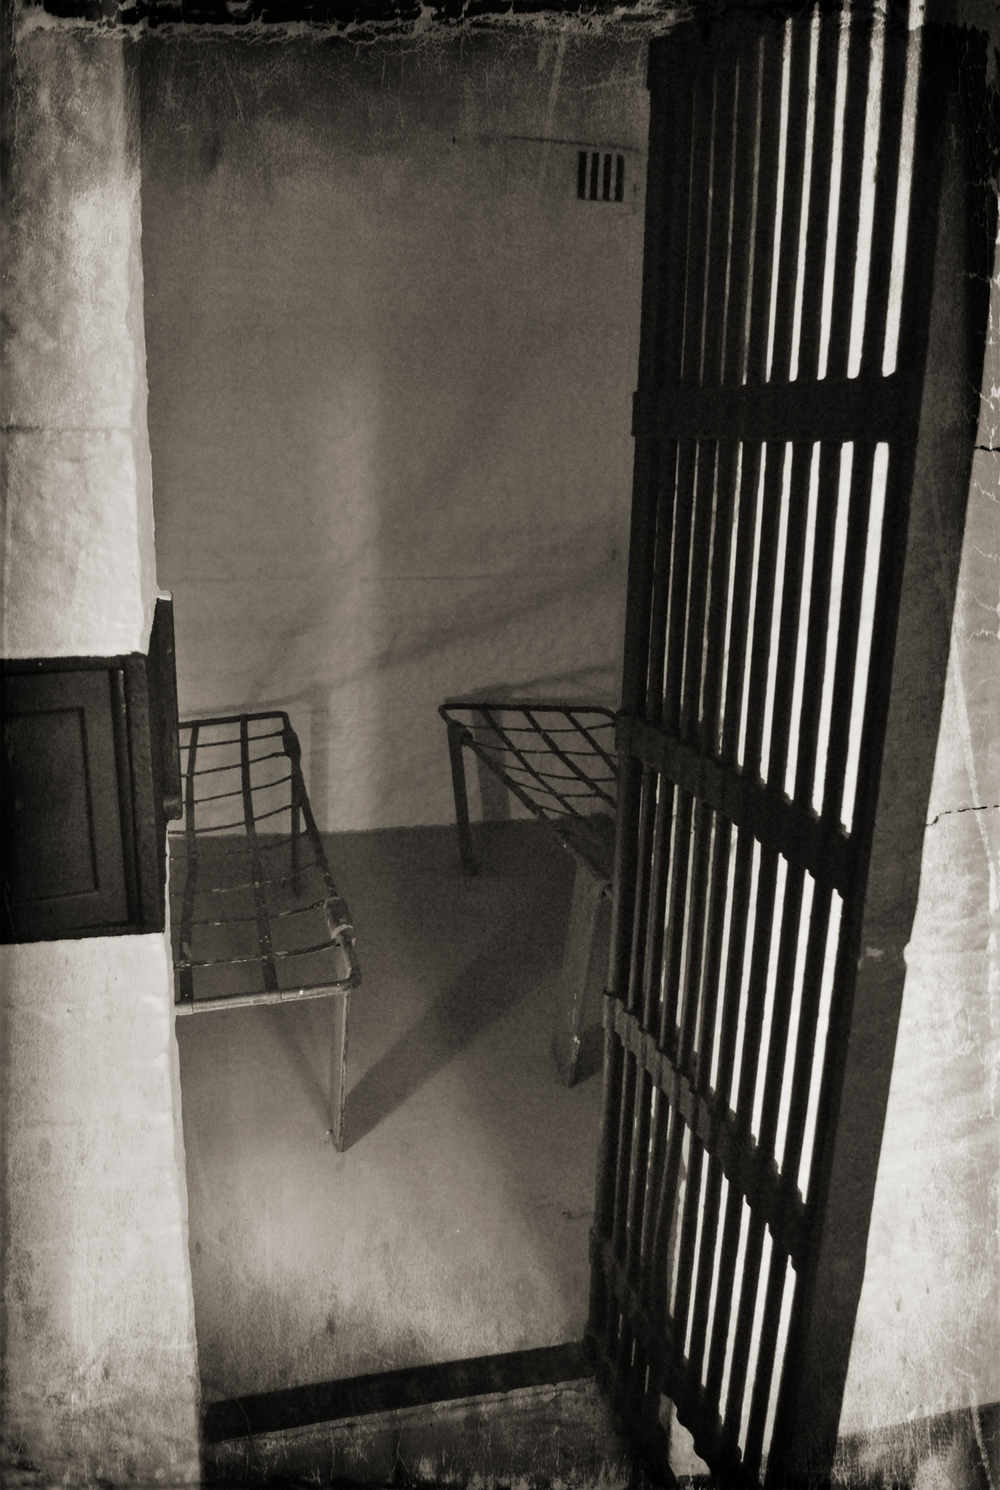 Lower cellblock interior 2015